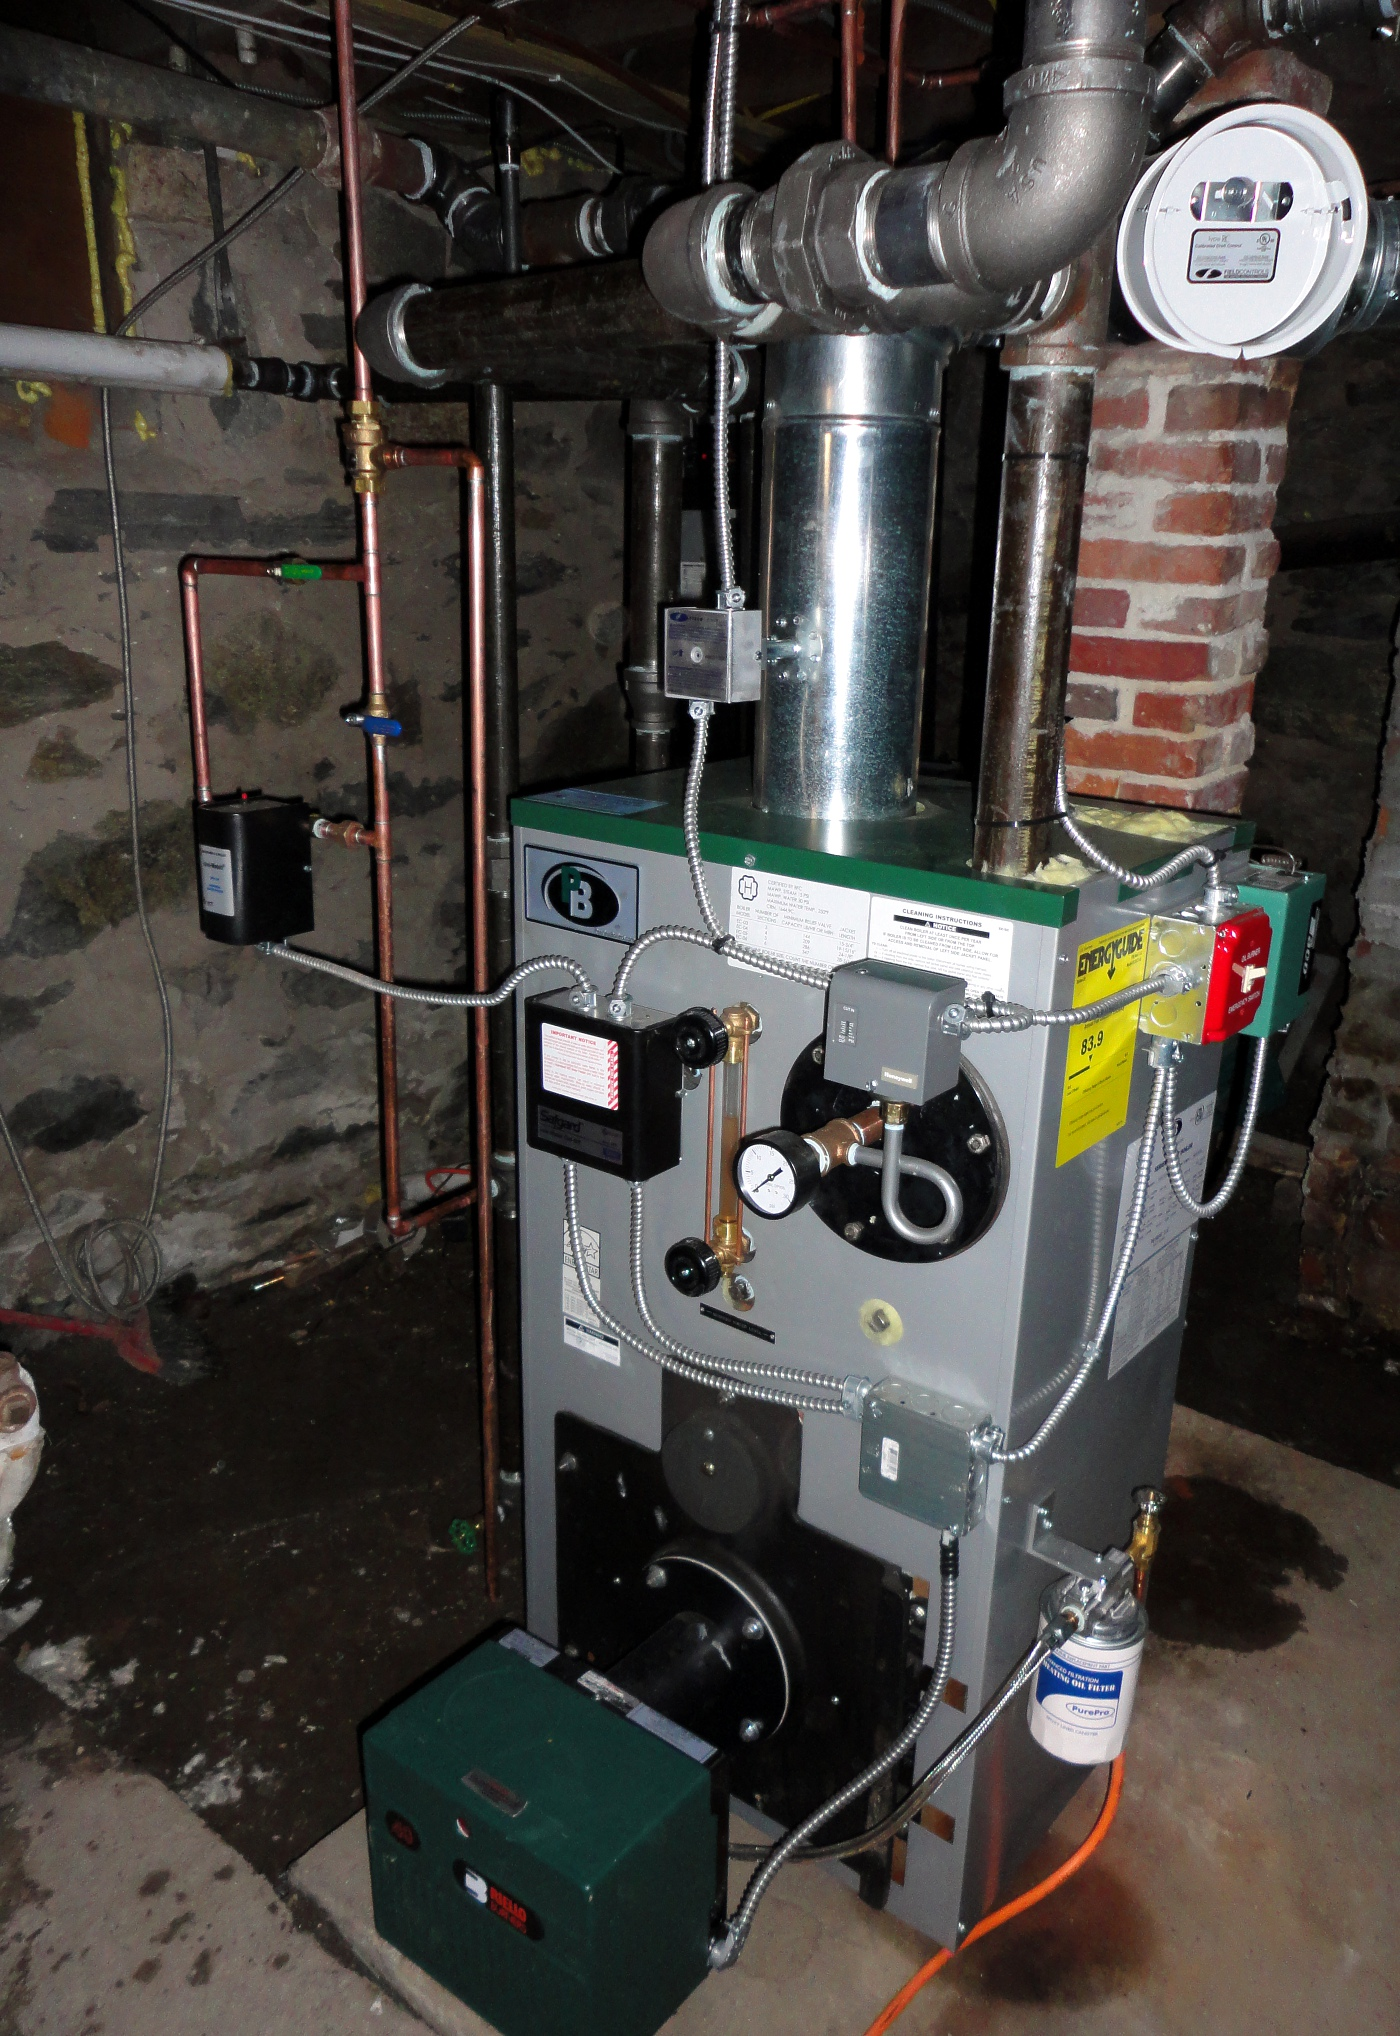 Steam Boiler Burnham Piping Diagram Tankless Water Heater Images Of